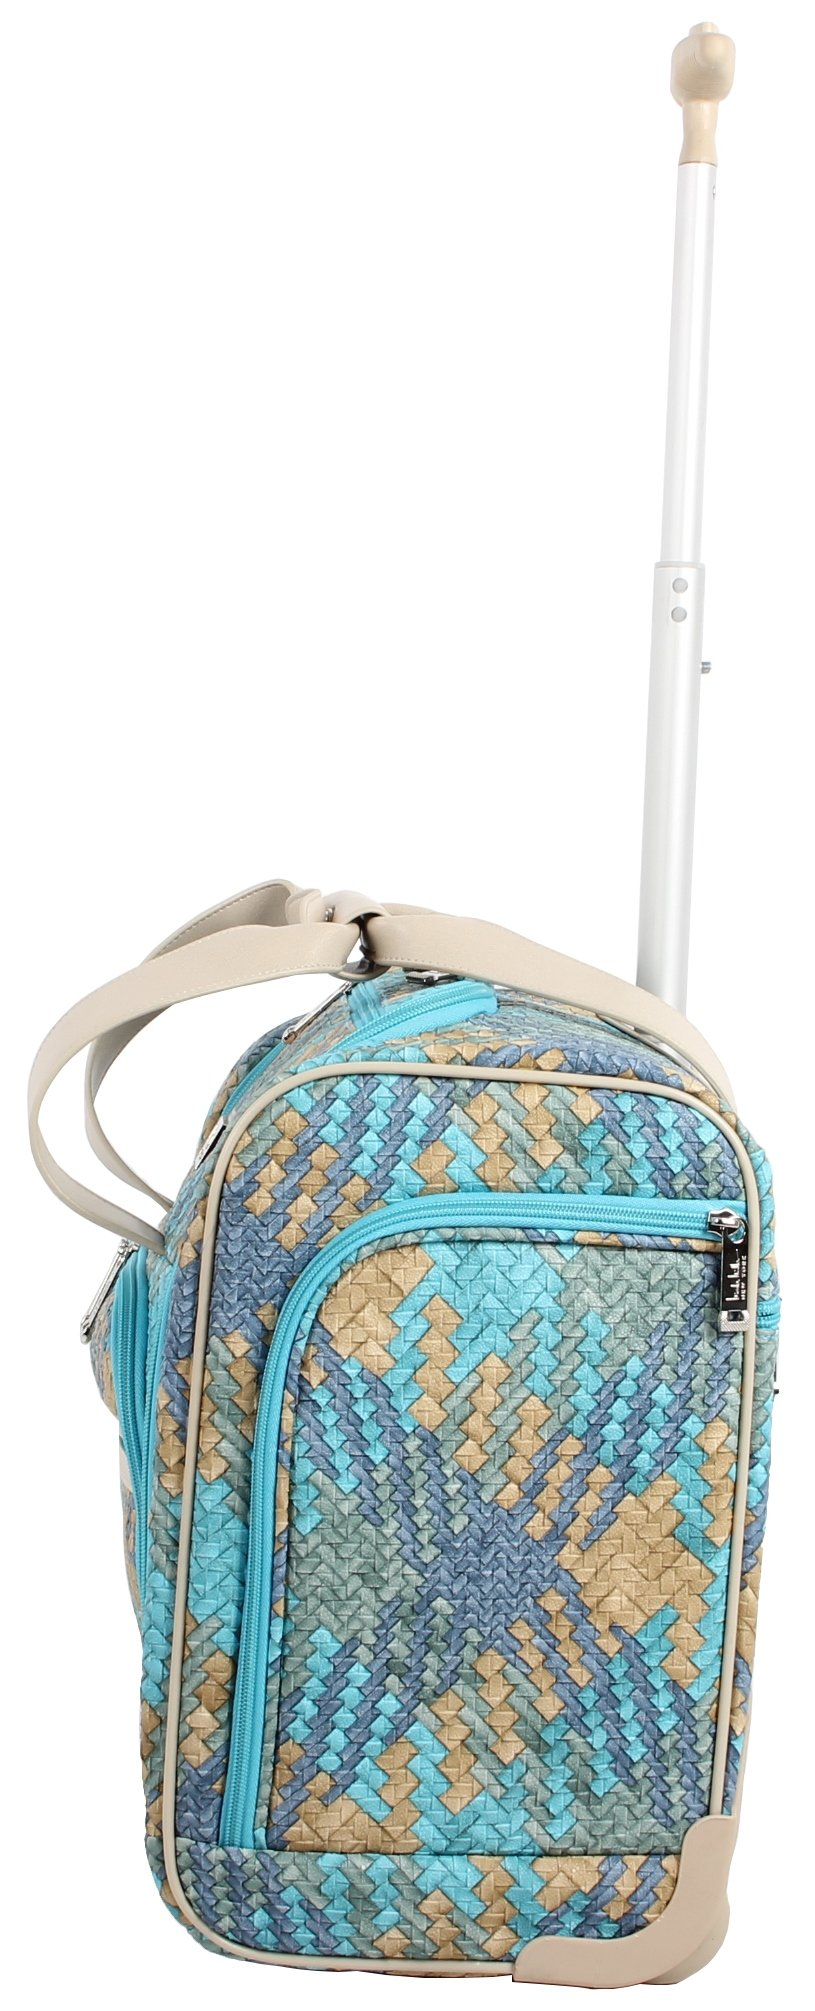 Nicole Miller Taylor Collection 15'' Under Seat Bag (Woven Teal) by Nicole Miller (Image #2)